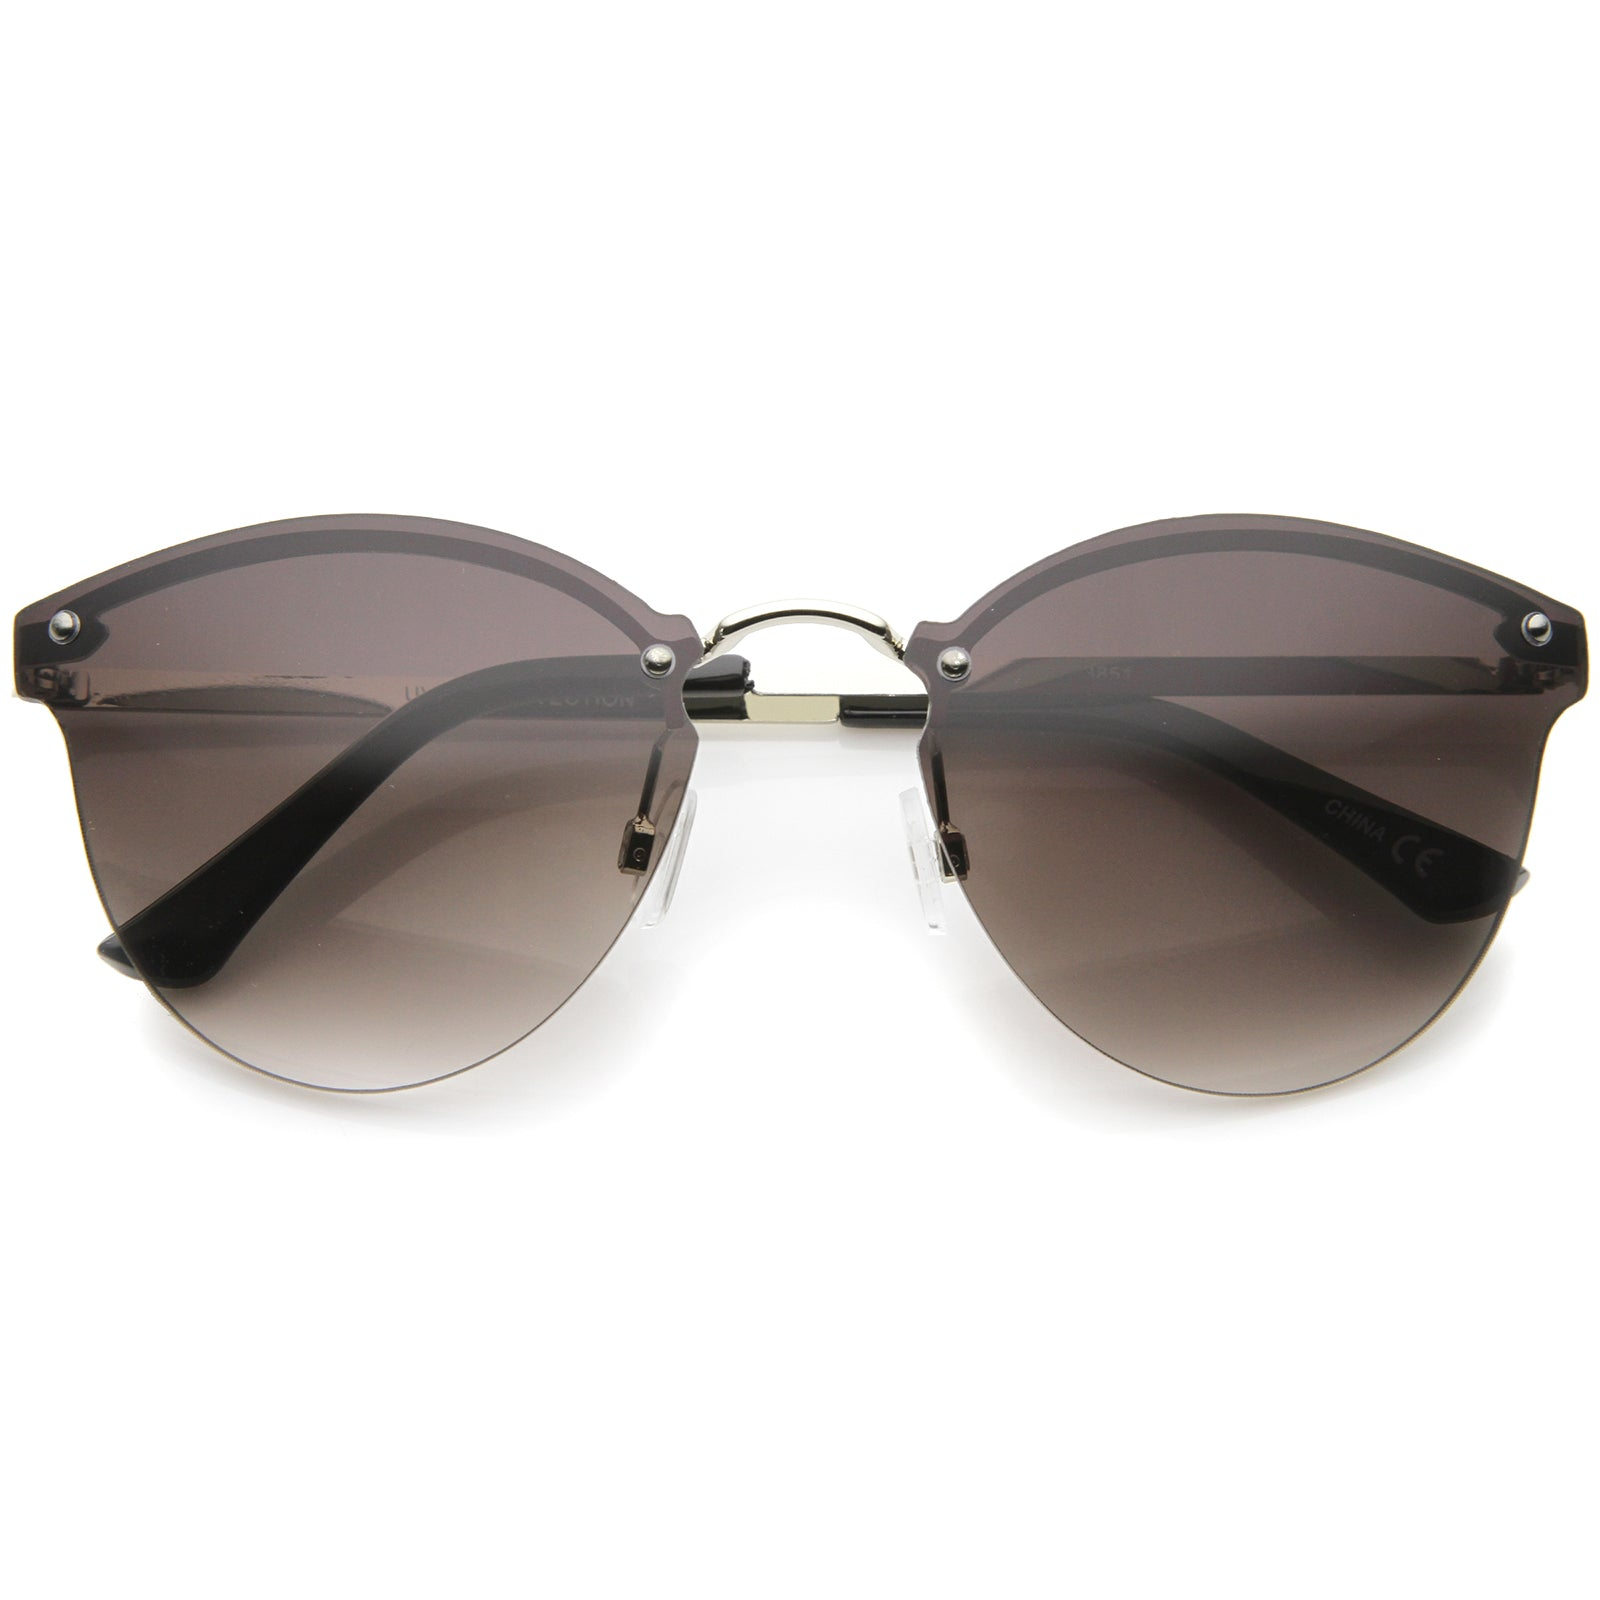 Womens Fashion Lightweight Rimless Metal Temple Cat Eye Sunglasses - sunglass.la - 5